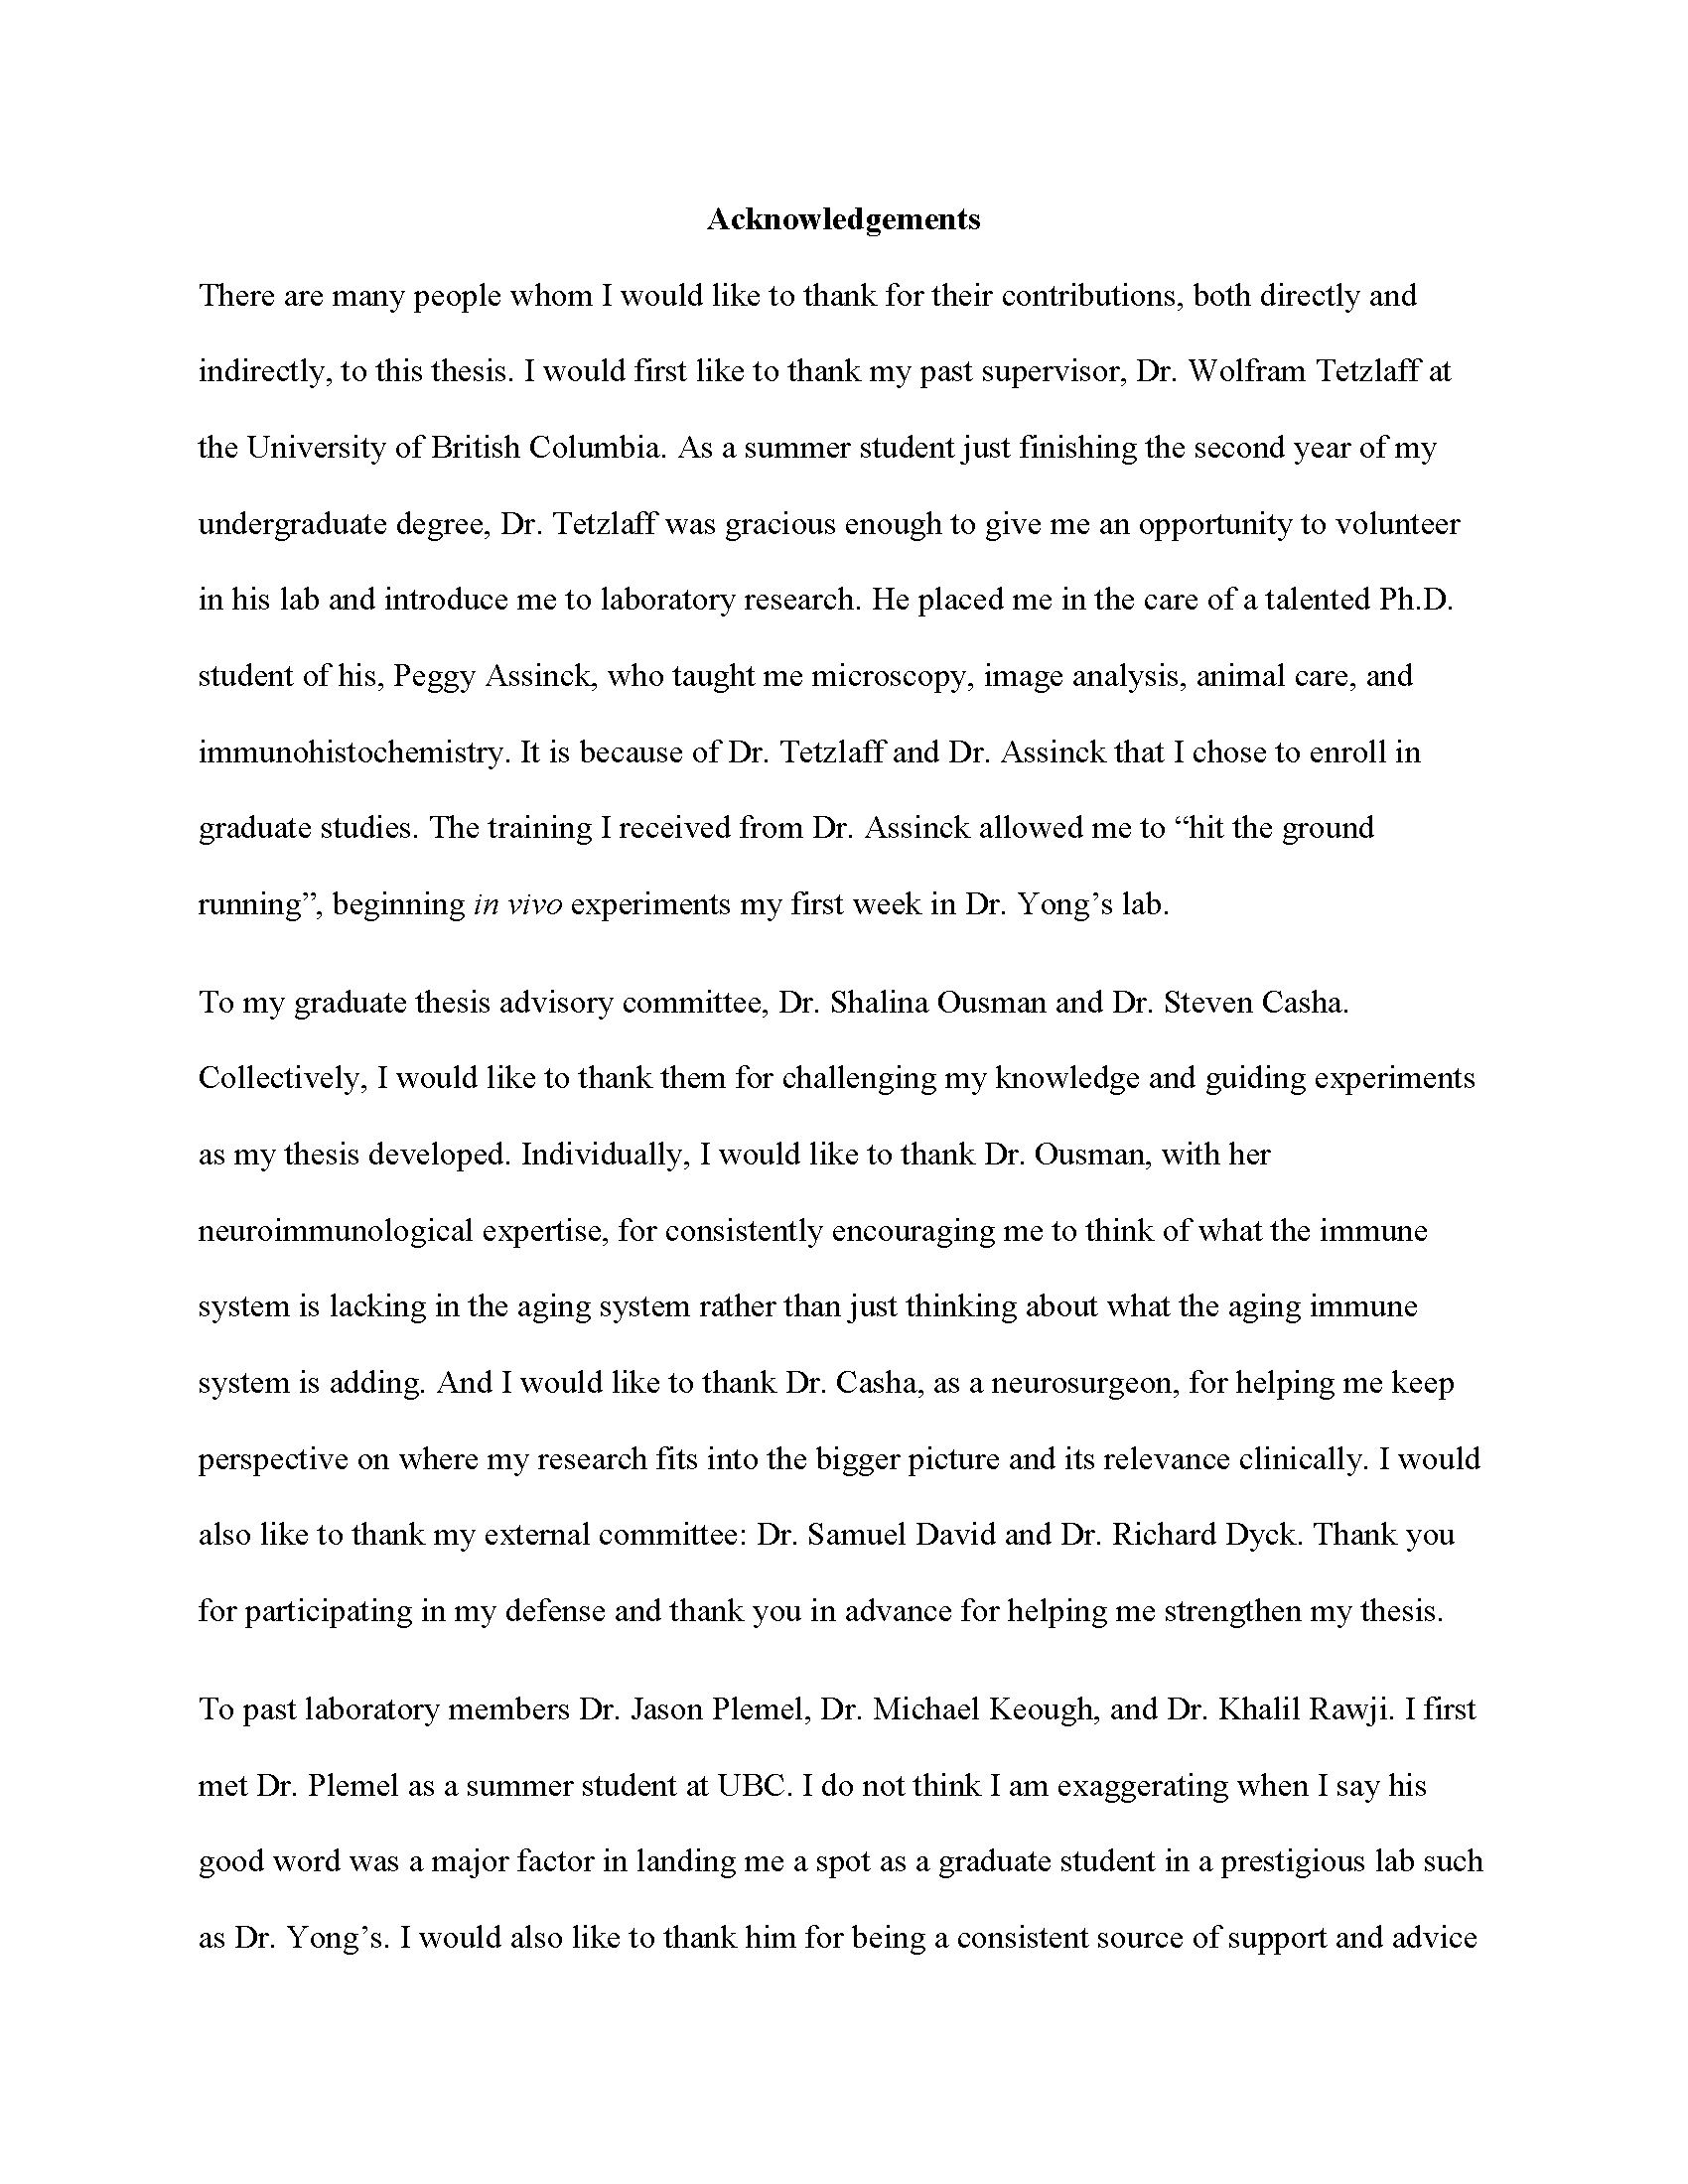 THANK YOU EVERYONE: THE ACKNOWLEDGMENTS AND DEDICATION PAGES OF MY PHD  THESIS — Nathan J. Michaels